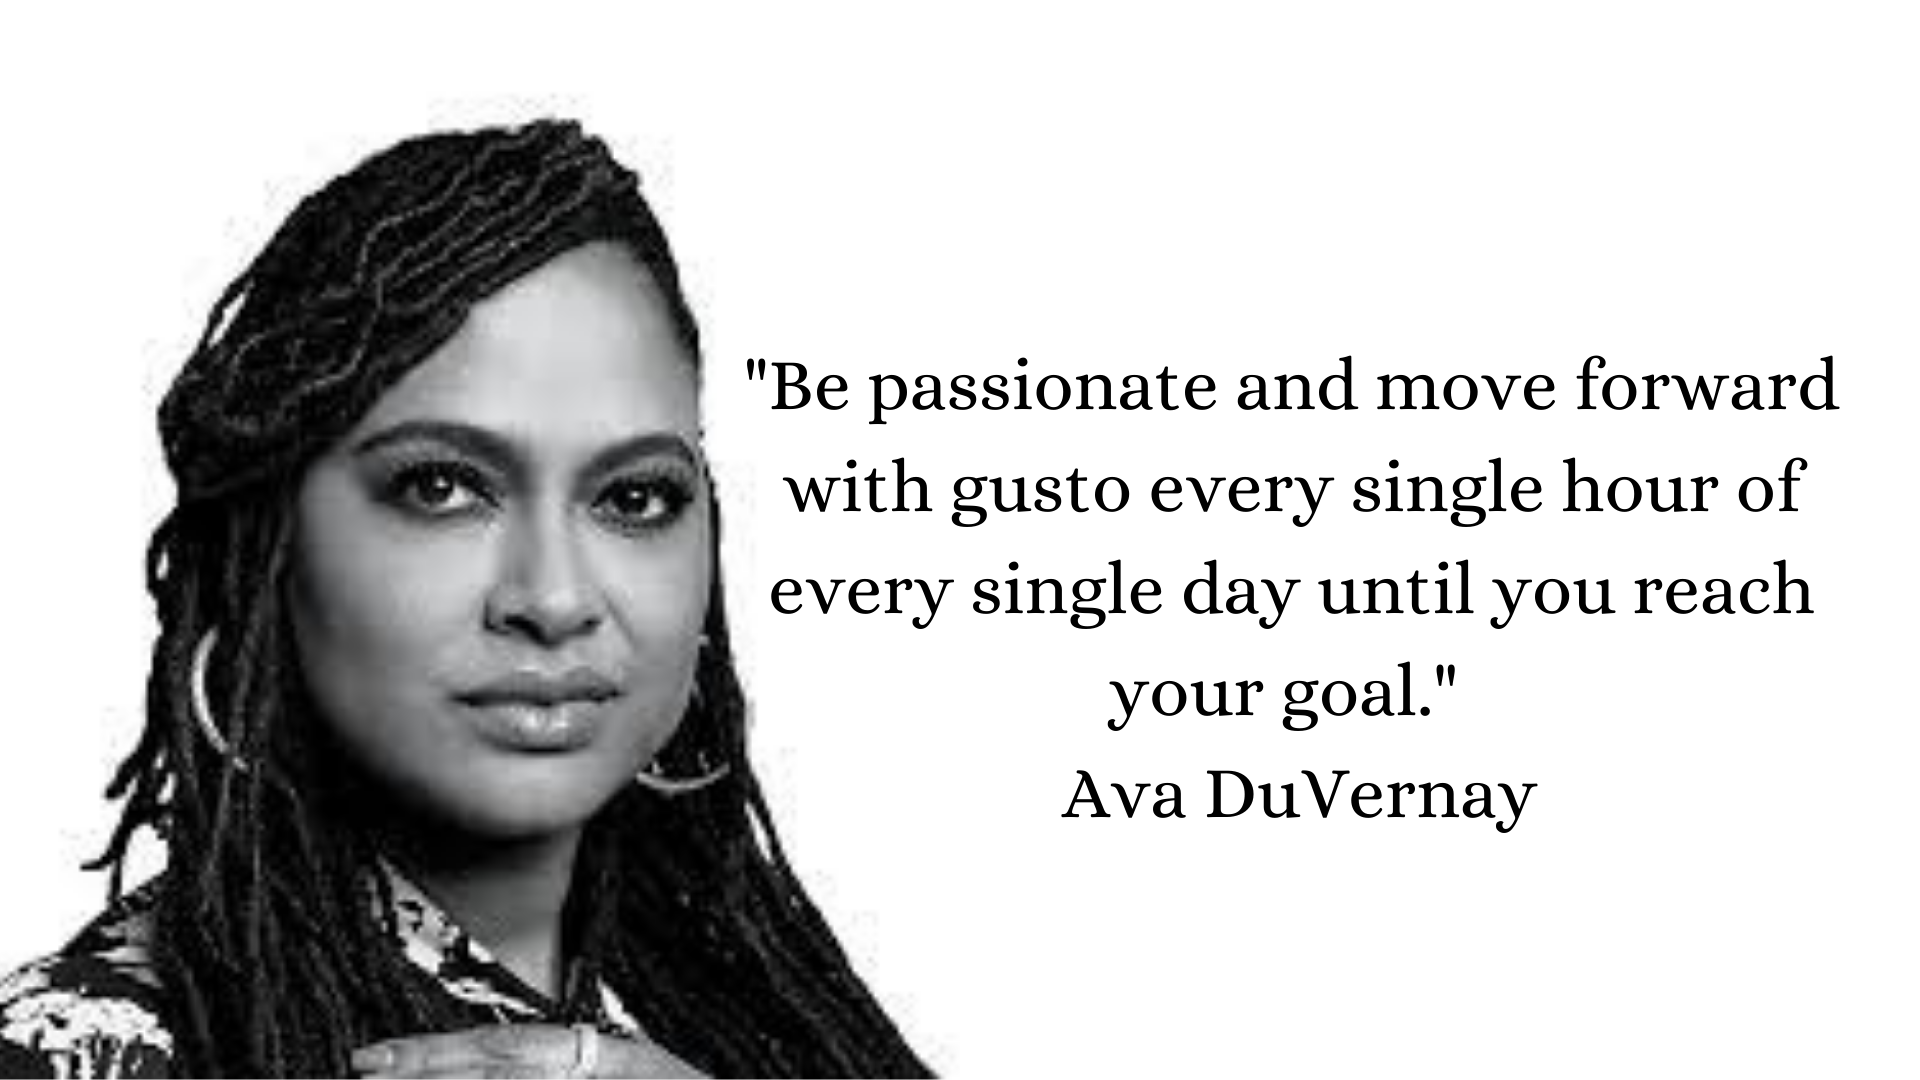 Quote by Ava DuVernay